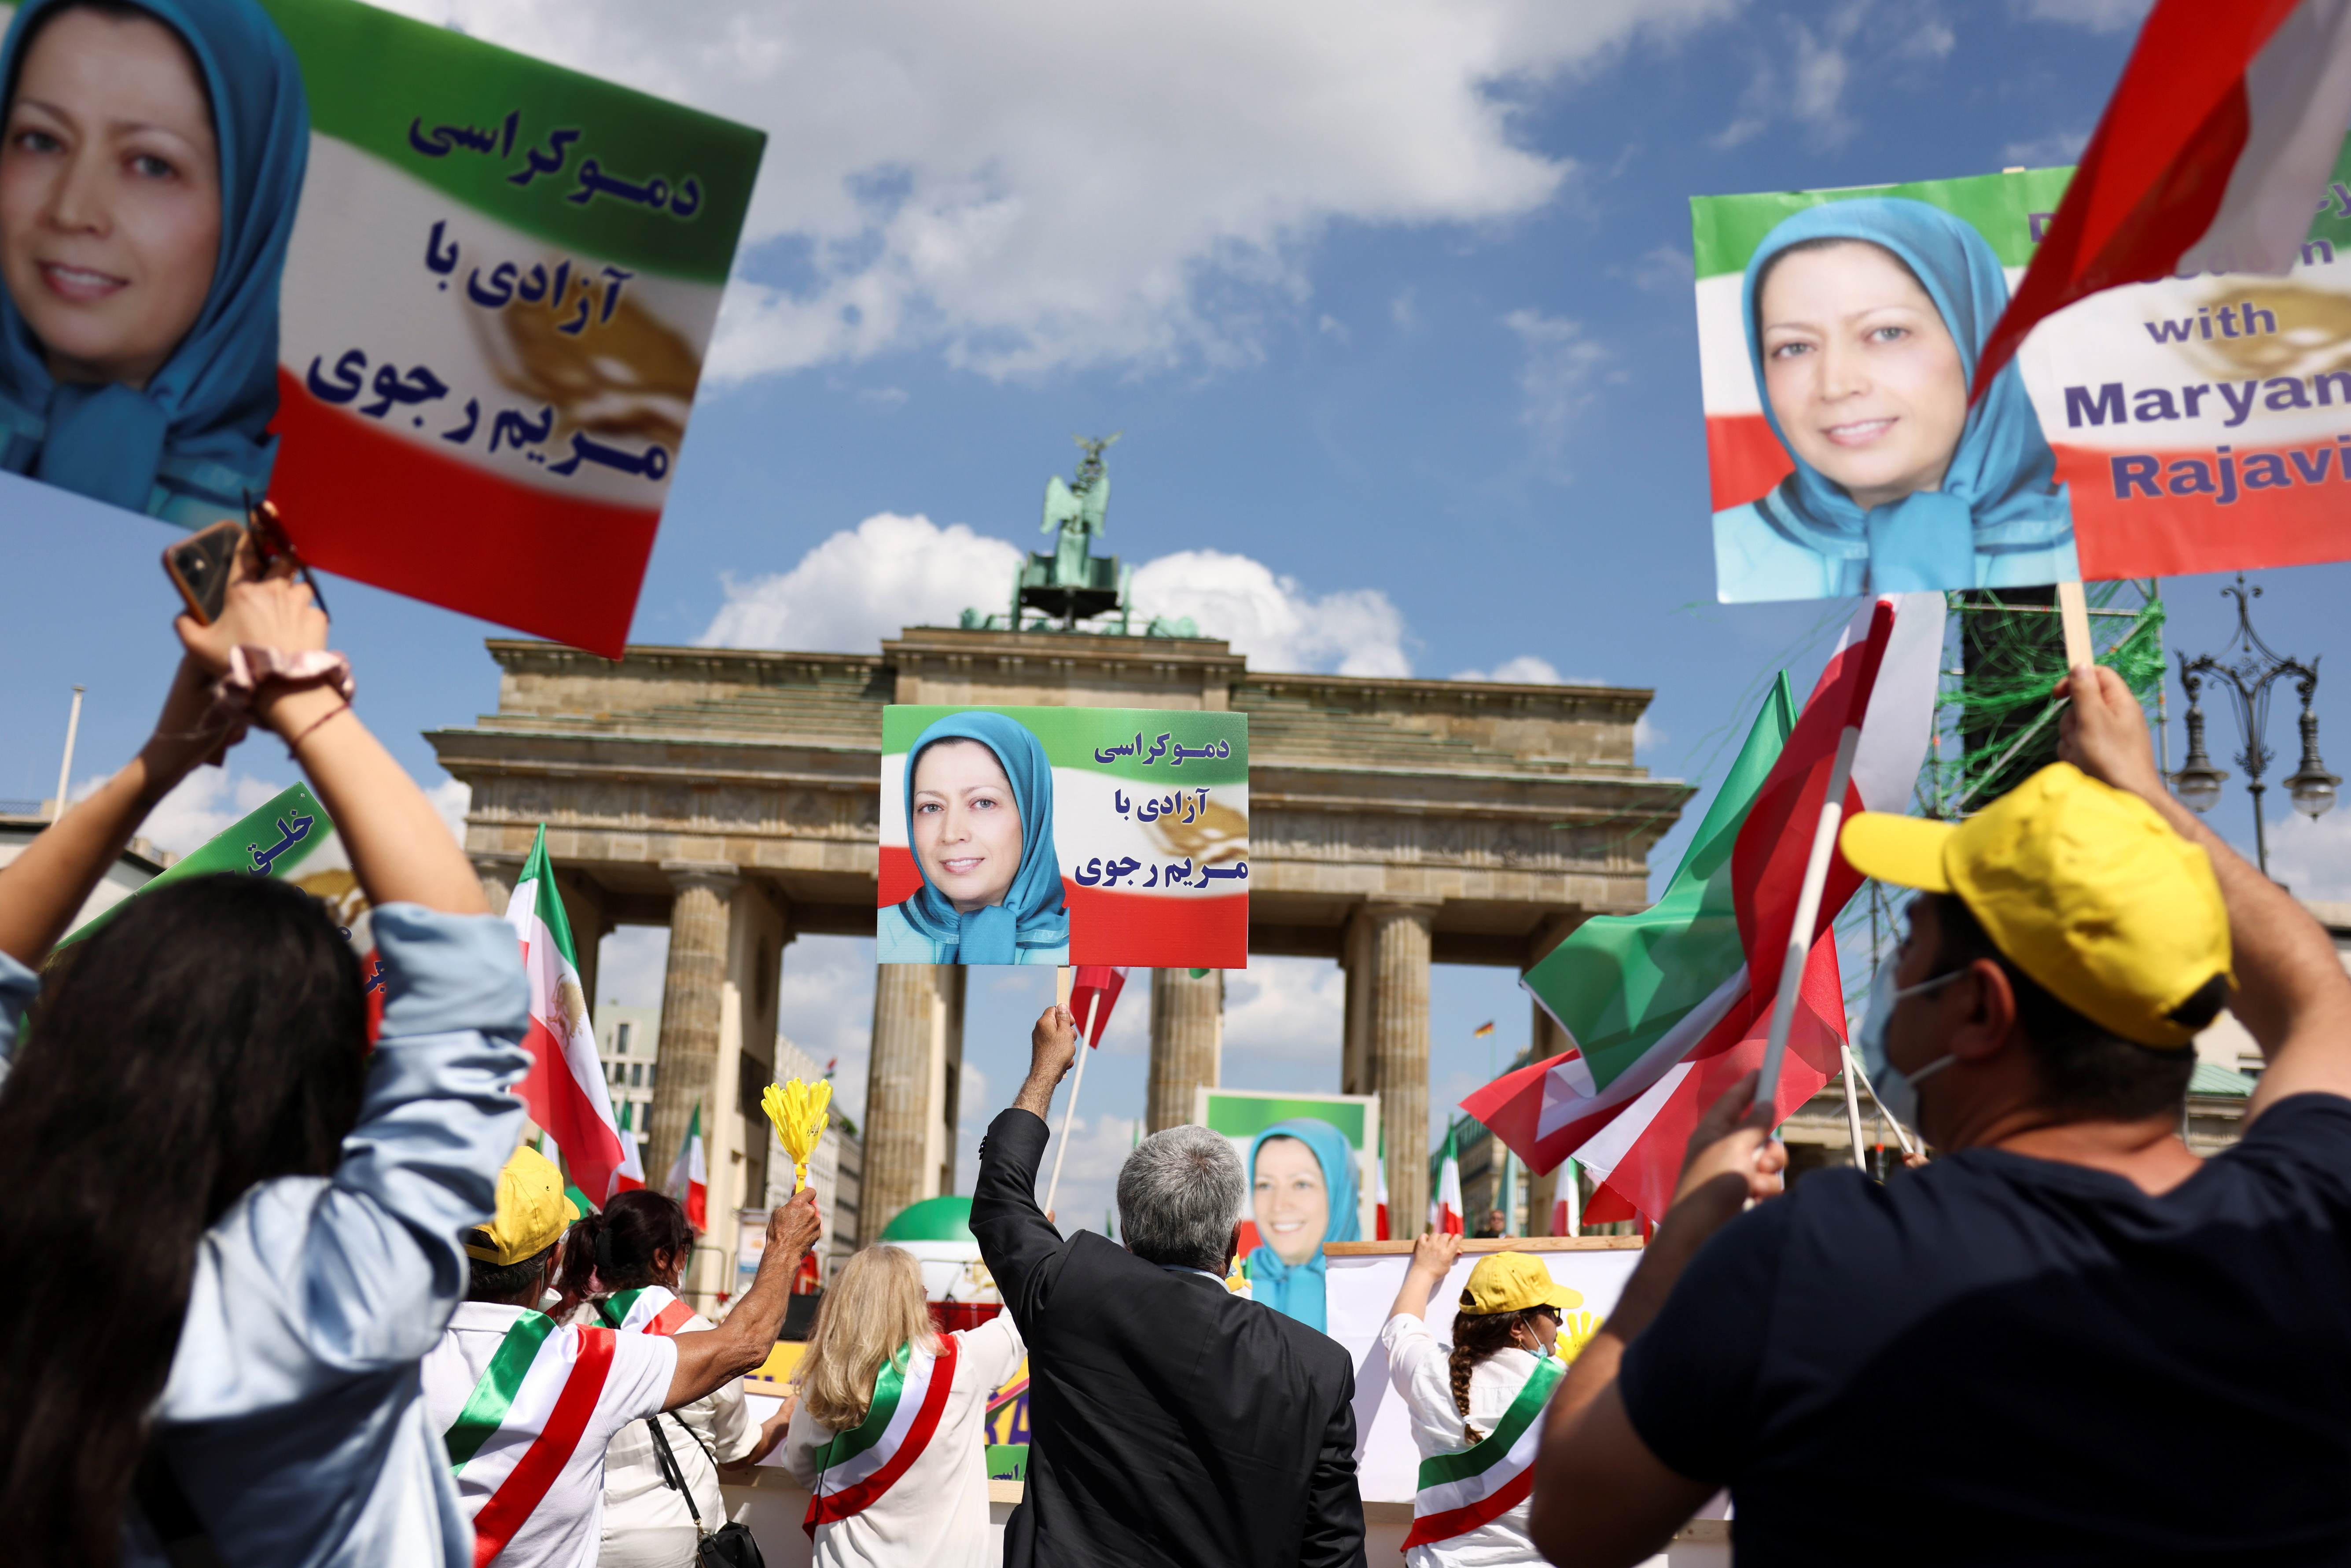 Supporters of the National Council of Resistance of Iran (NCRI) hold protraits of Iranian opposition leader Maryam Rajavi during a protest against the government in Teheran and the use of the death penalty in Iran, in front of the Brandenburg Gate in Berlin, Germany, July 10, 2021. REUTERS/Christian Mang